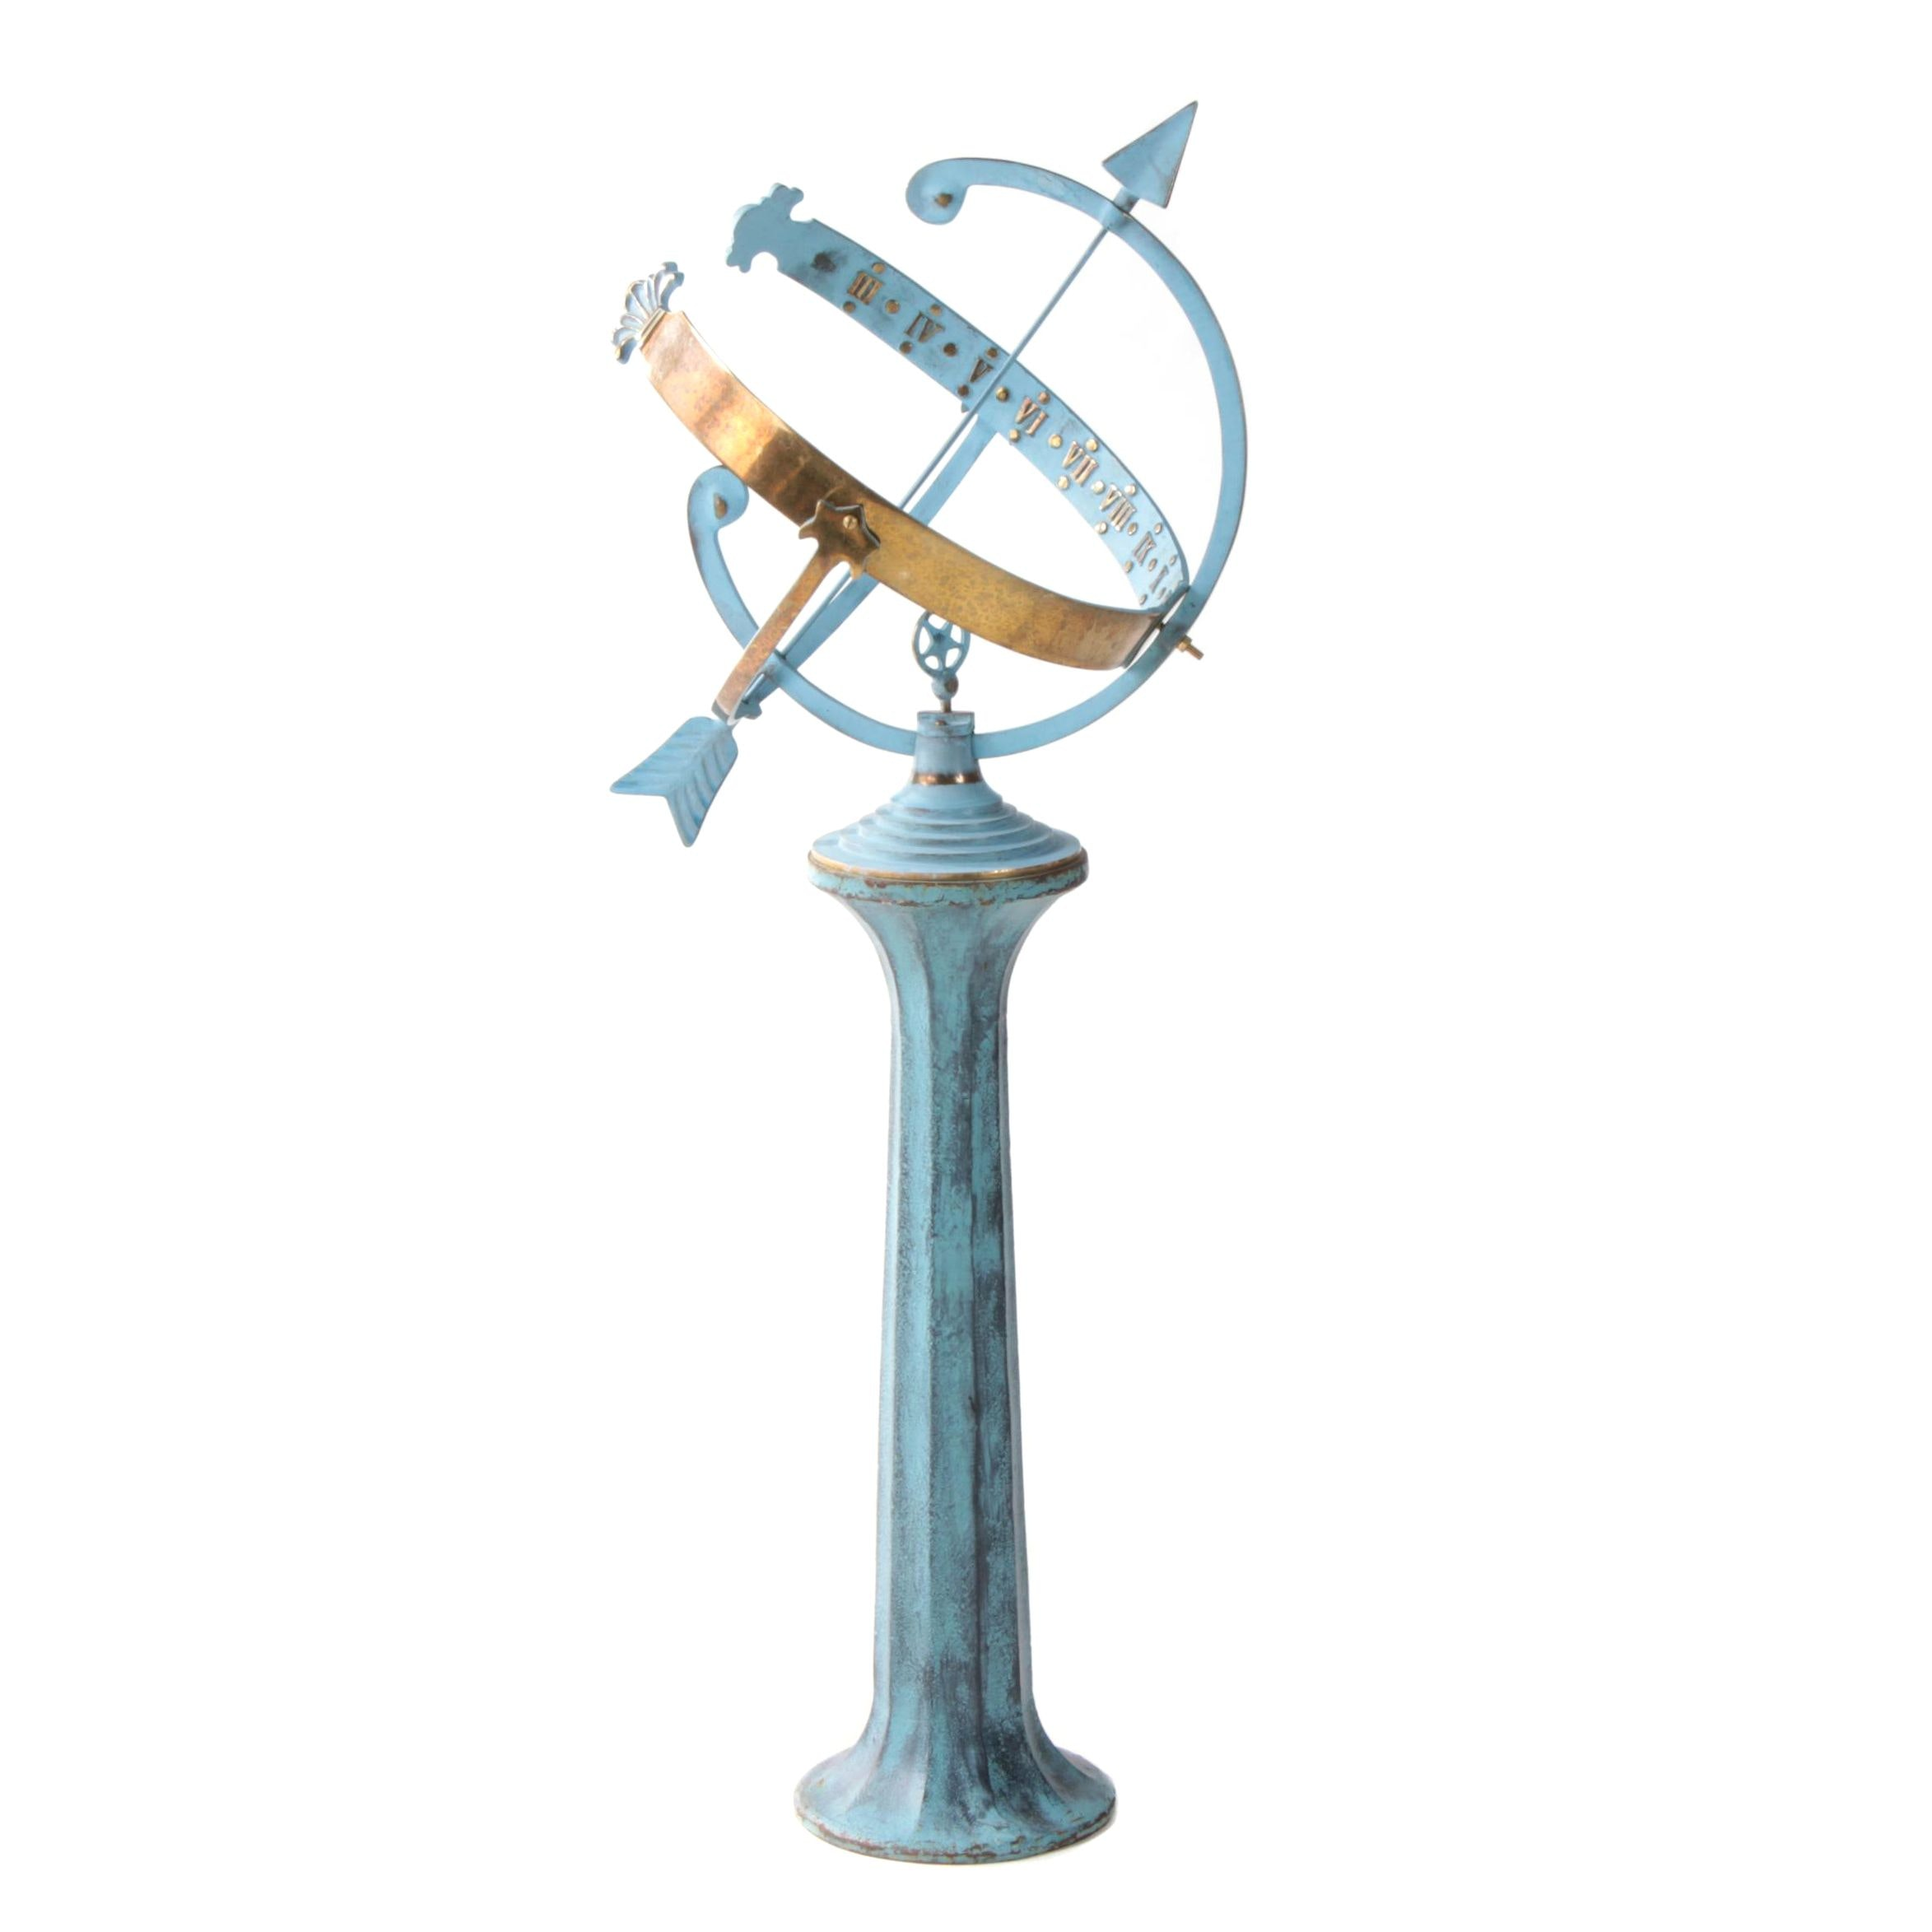 Painted Cast Iron Garden Armillary Sphere with Brass Accents